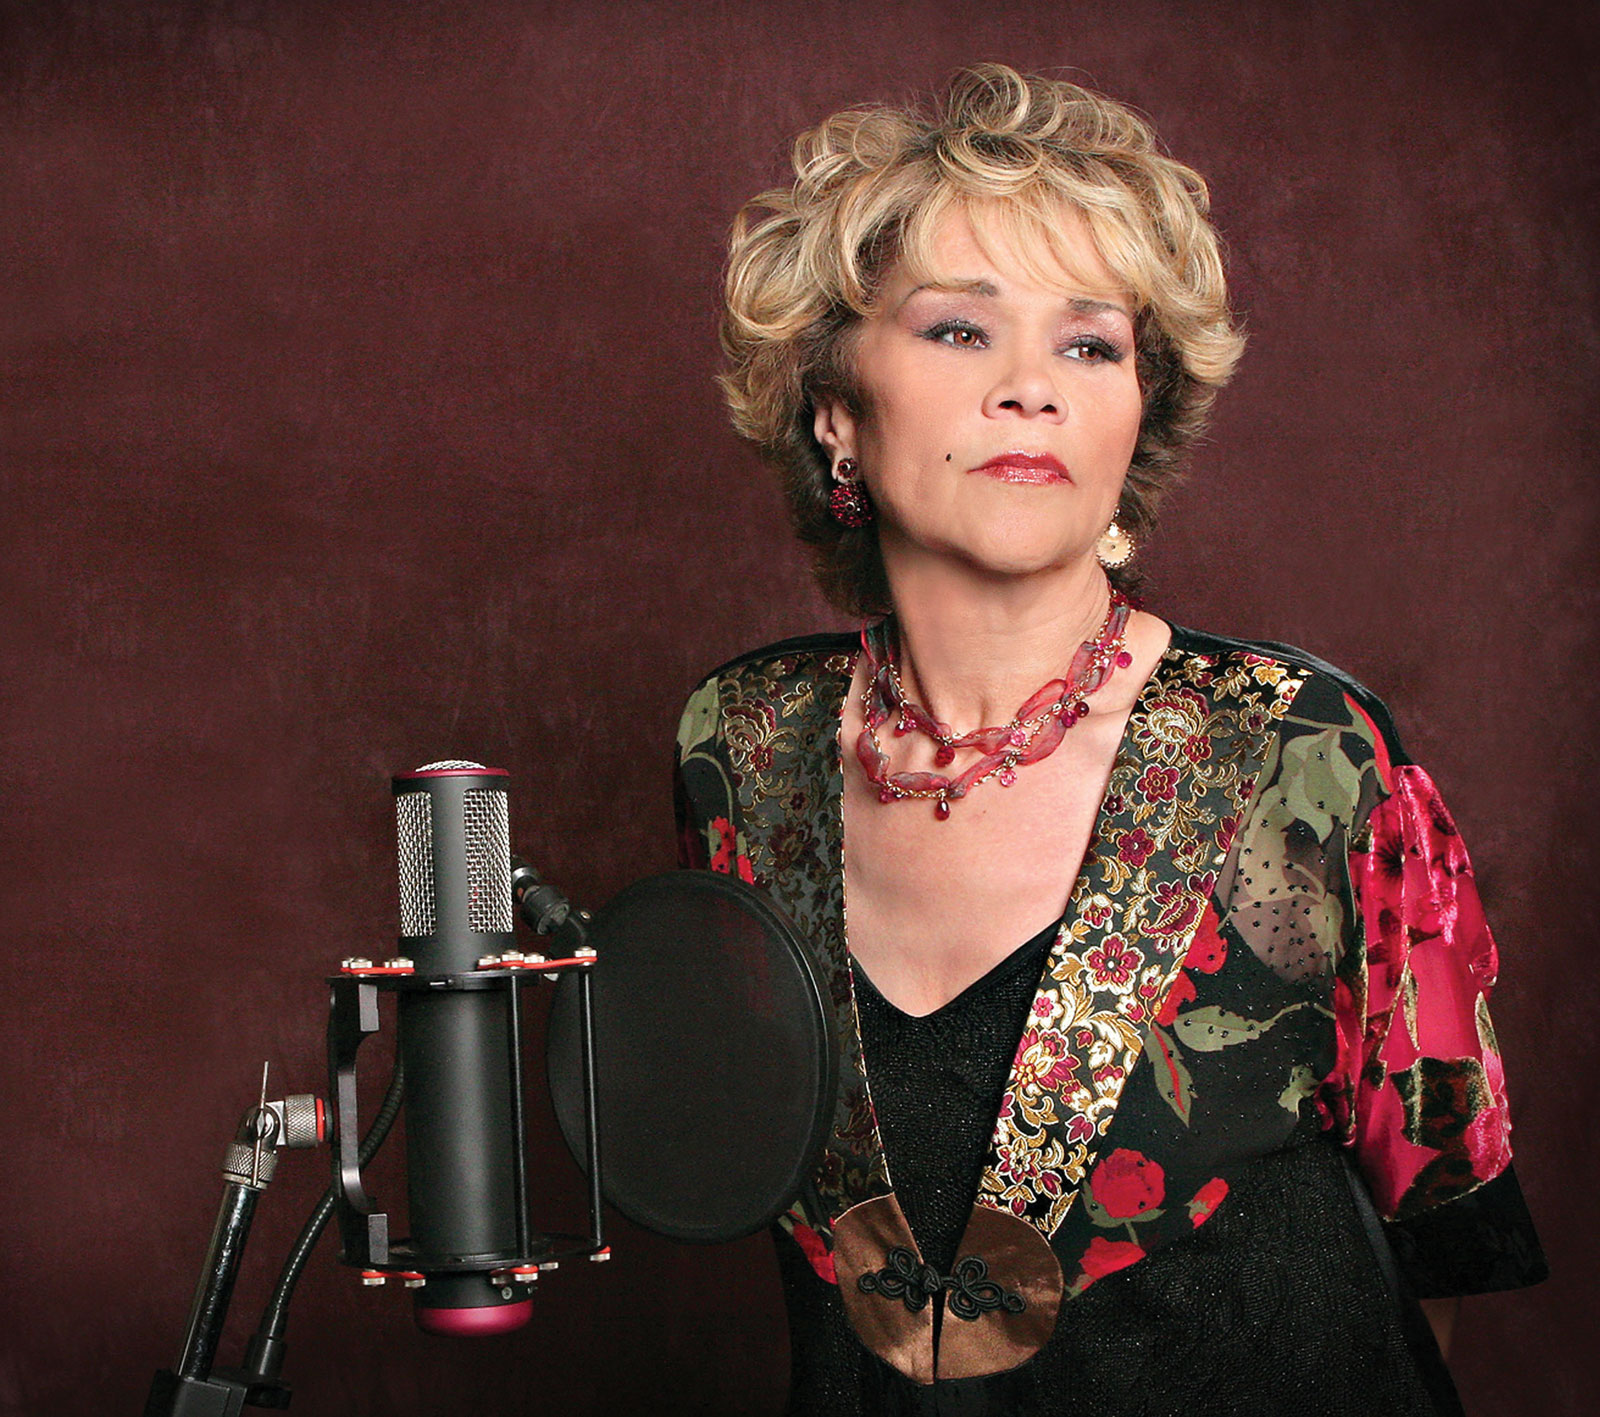 Etta James Wikipedia the encyclopedia Pics   HD Wallpaper 1600x1417